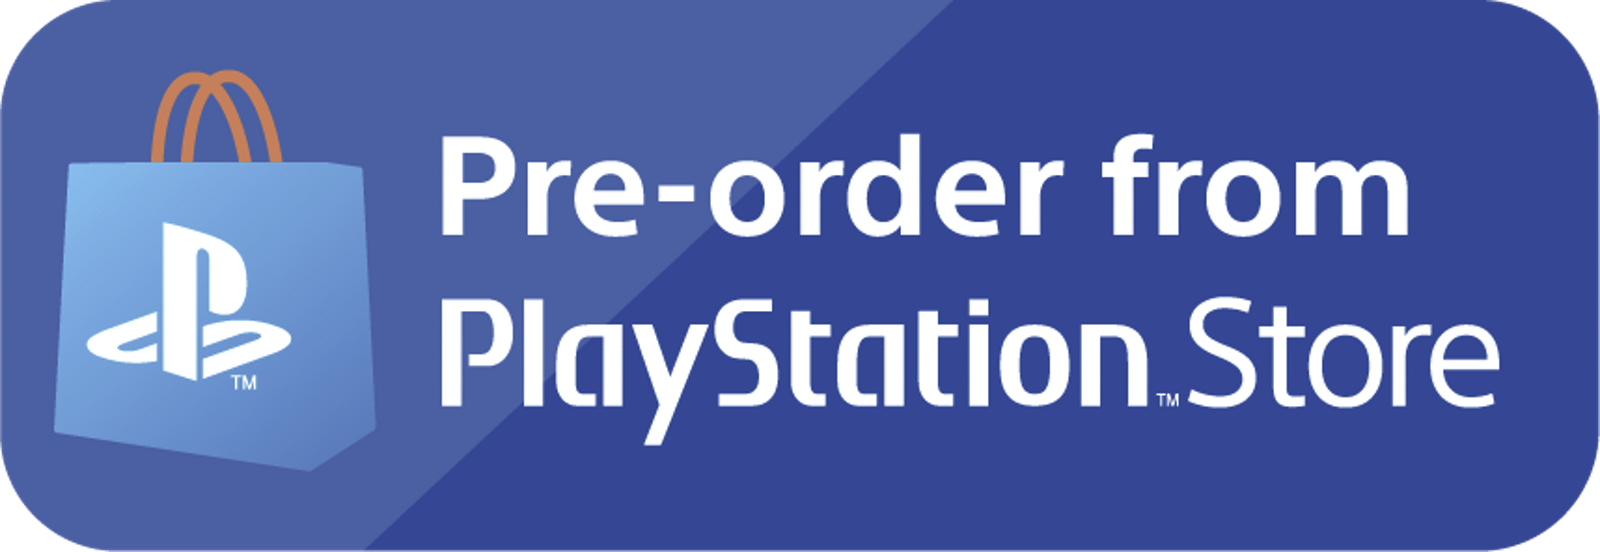 Pre-order from PS Store - icon